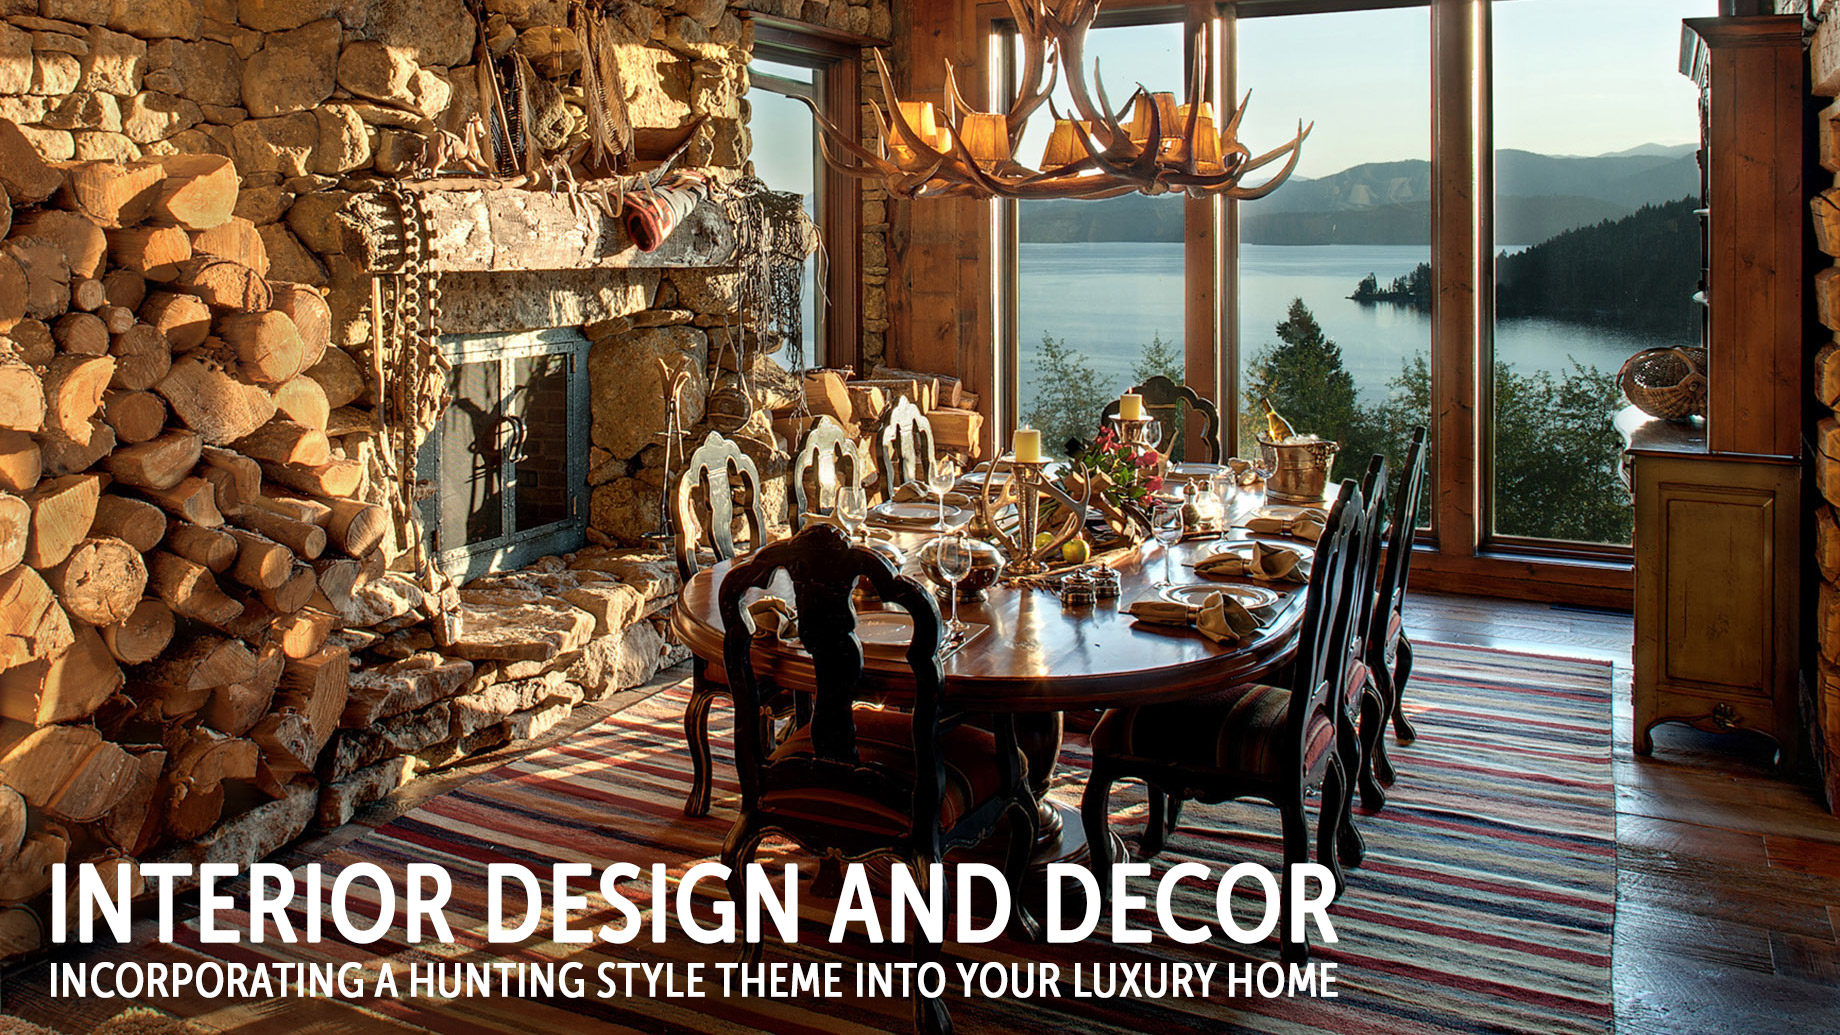 Interior Design and Decor - Incorporating a Hunting Style Theme into Your Luxury Home